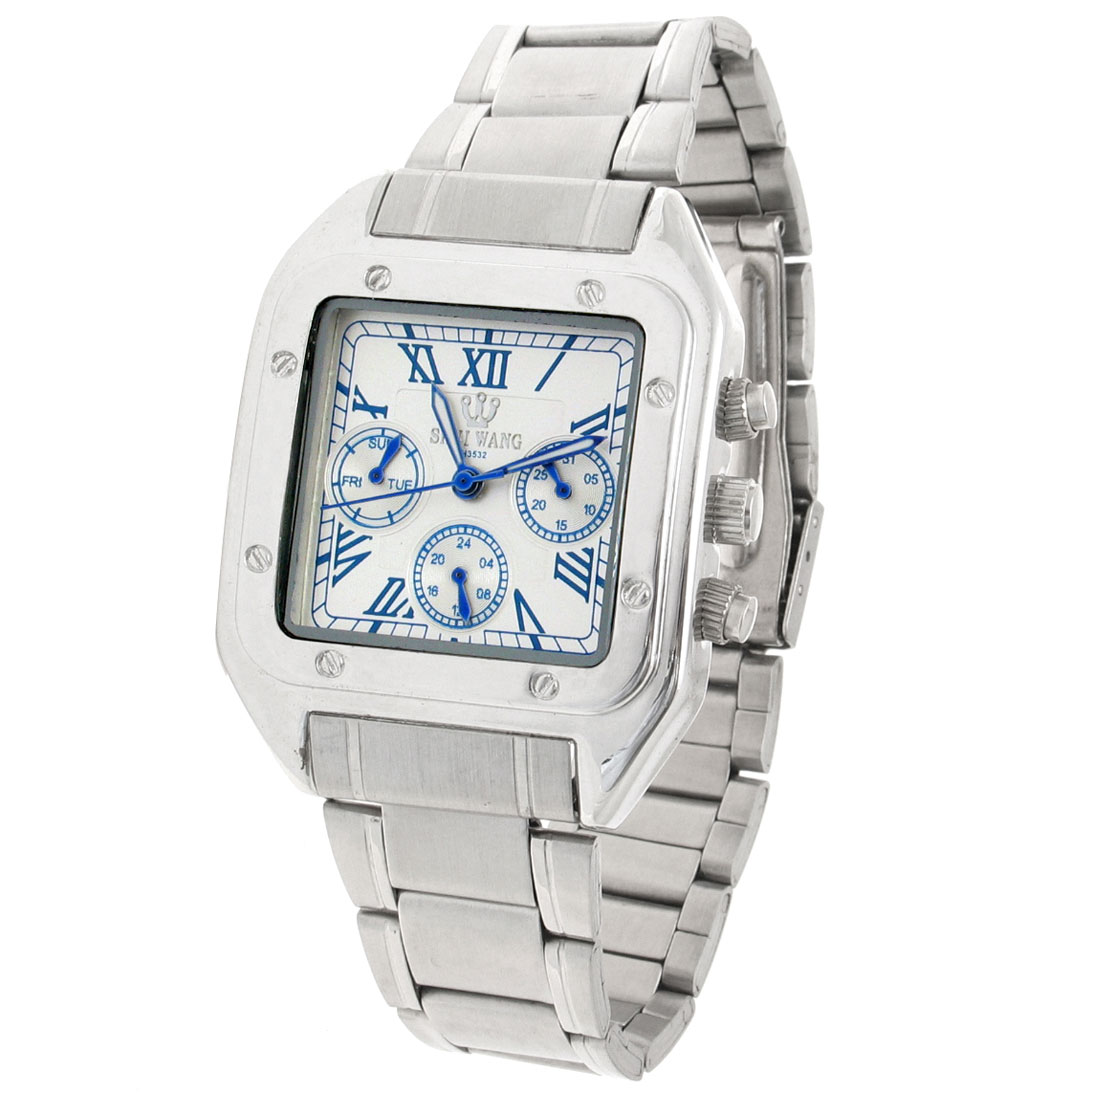 High Quality Fashion Men's Quartz Metal Wrist Watches(H3532) Silver